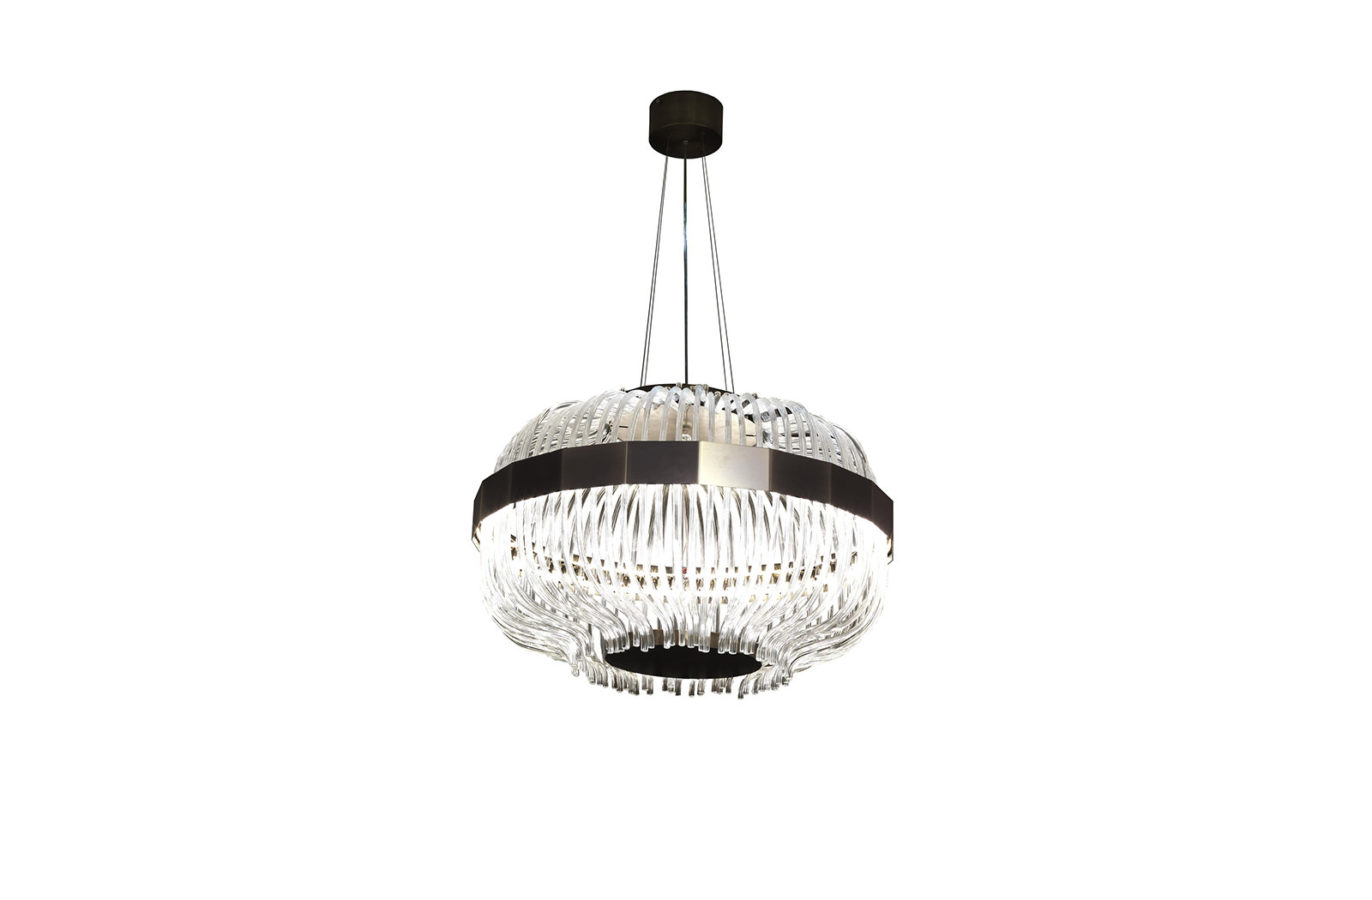 Wicker Suspension Lamp 1